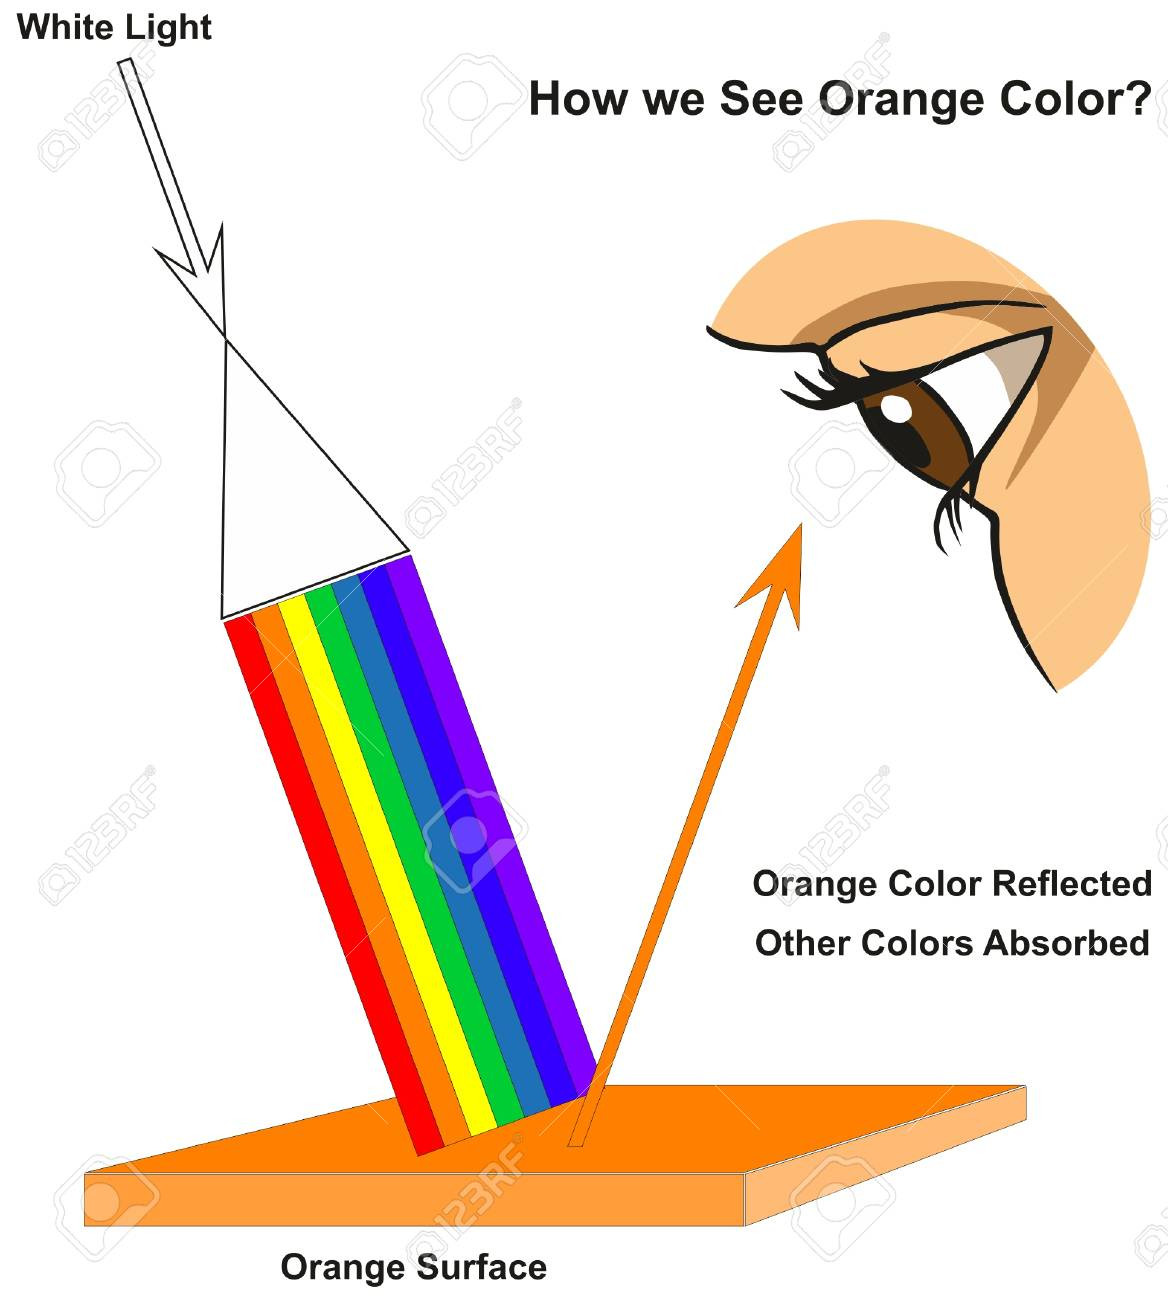 How we See Orange Color infographic diagram showing visible spectrum